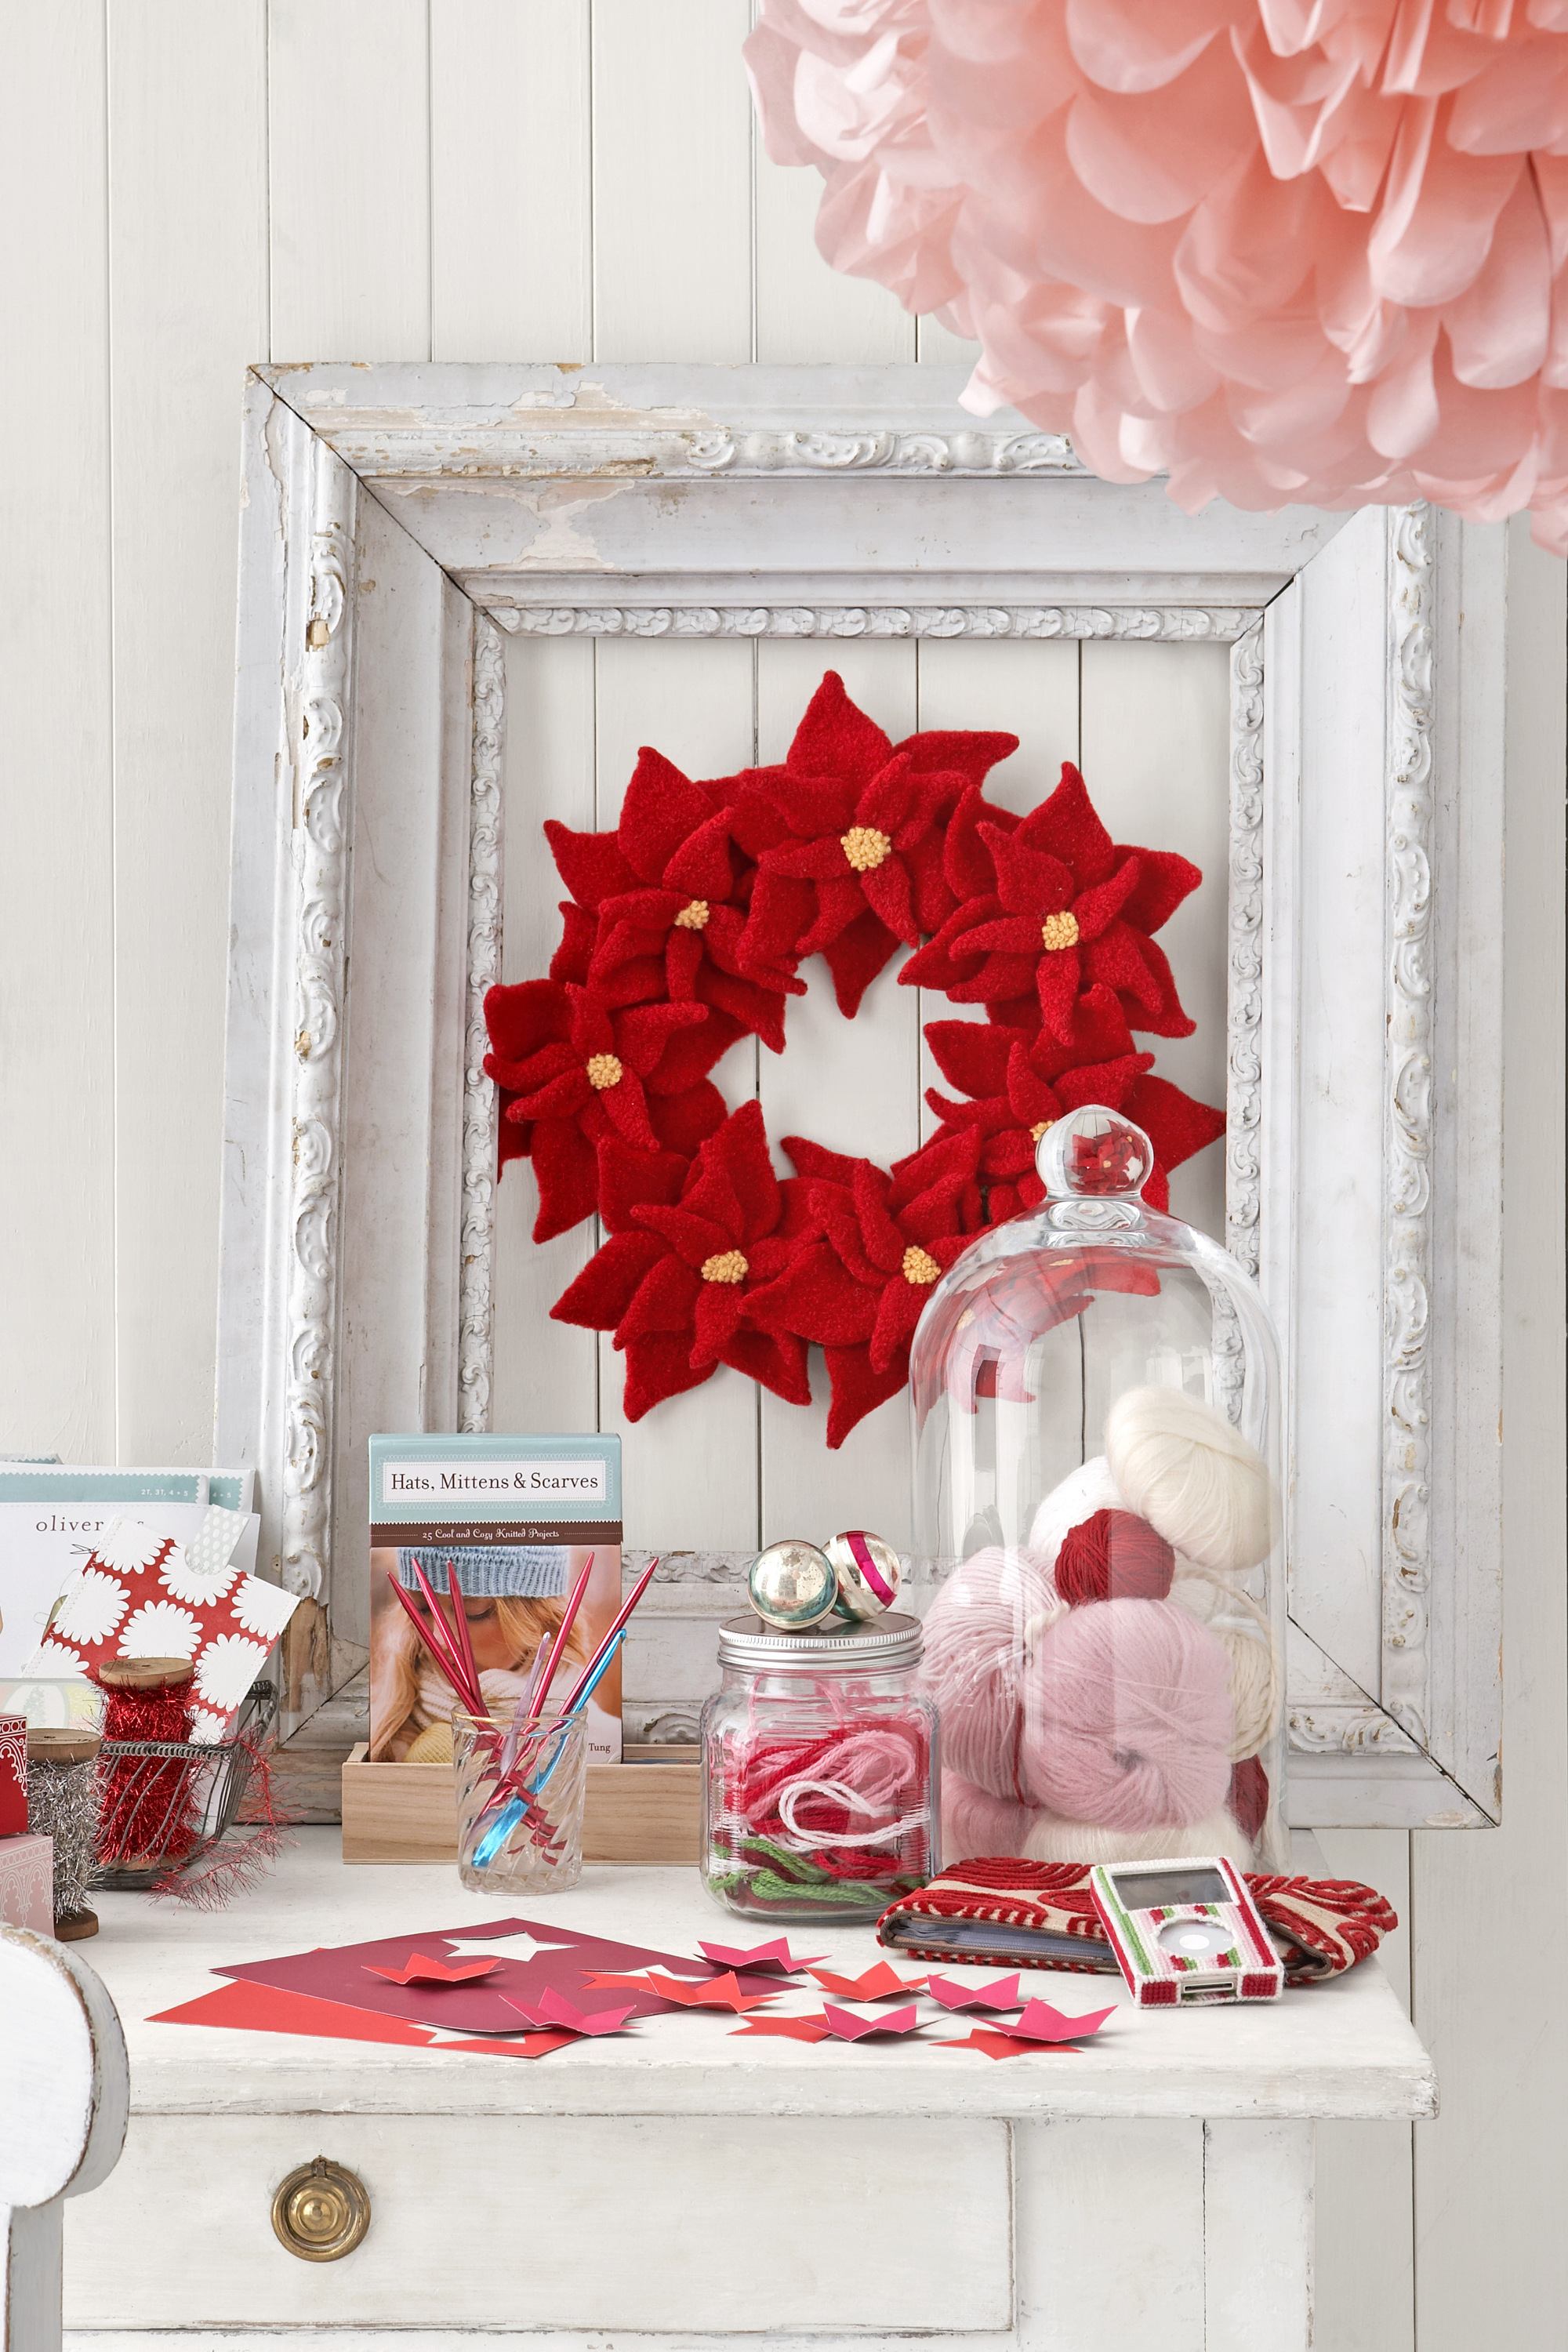 48 Diy Christmas Wreath Ideas How To Make Holiday